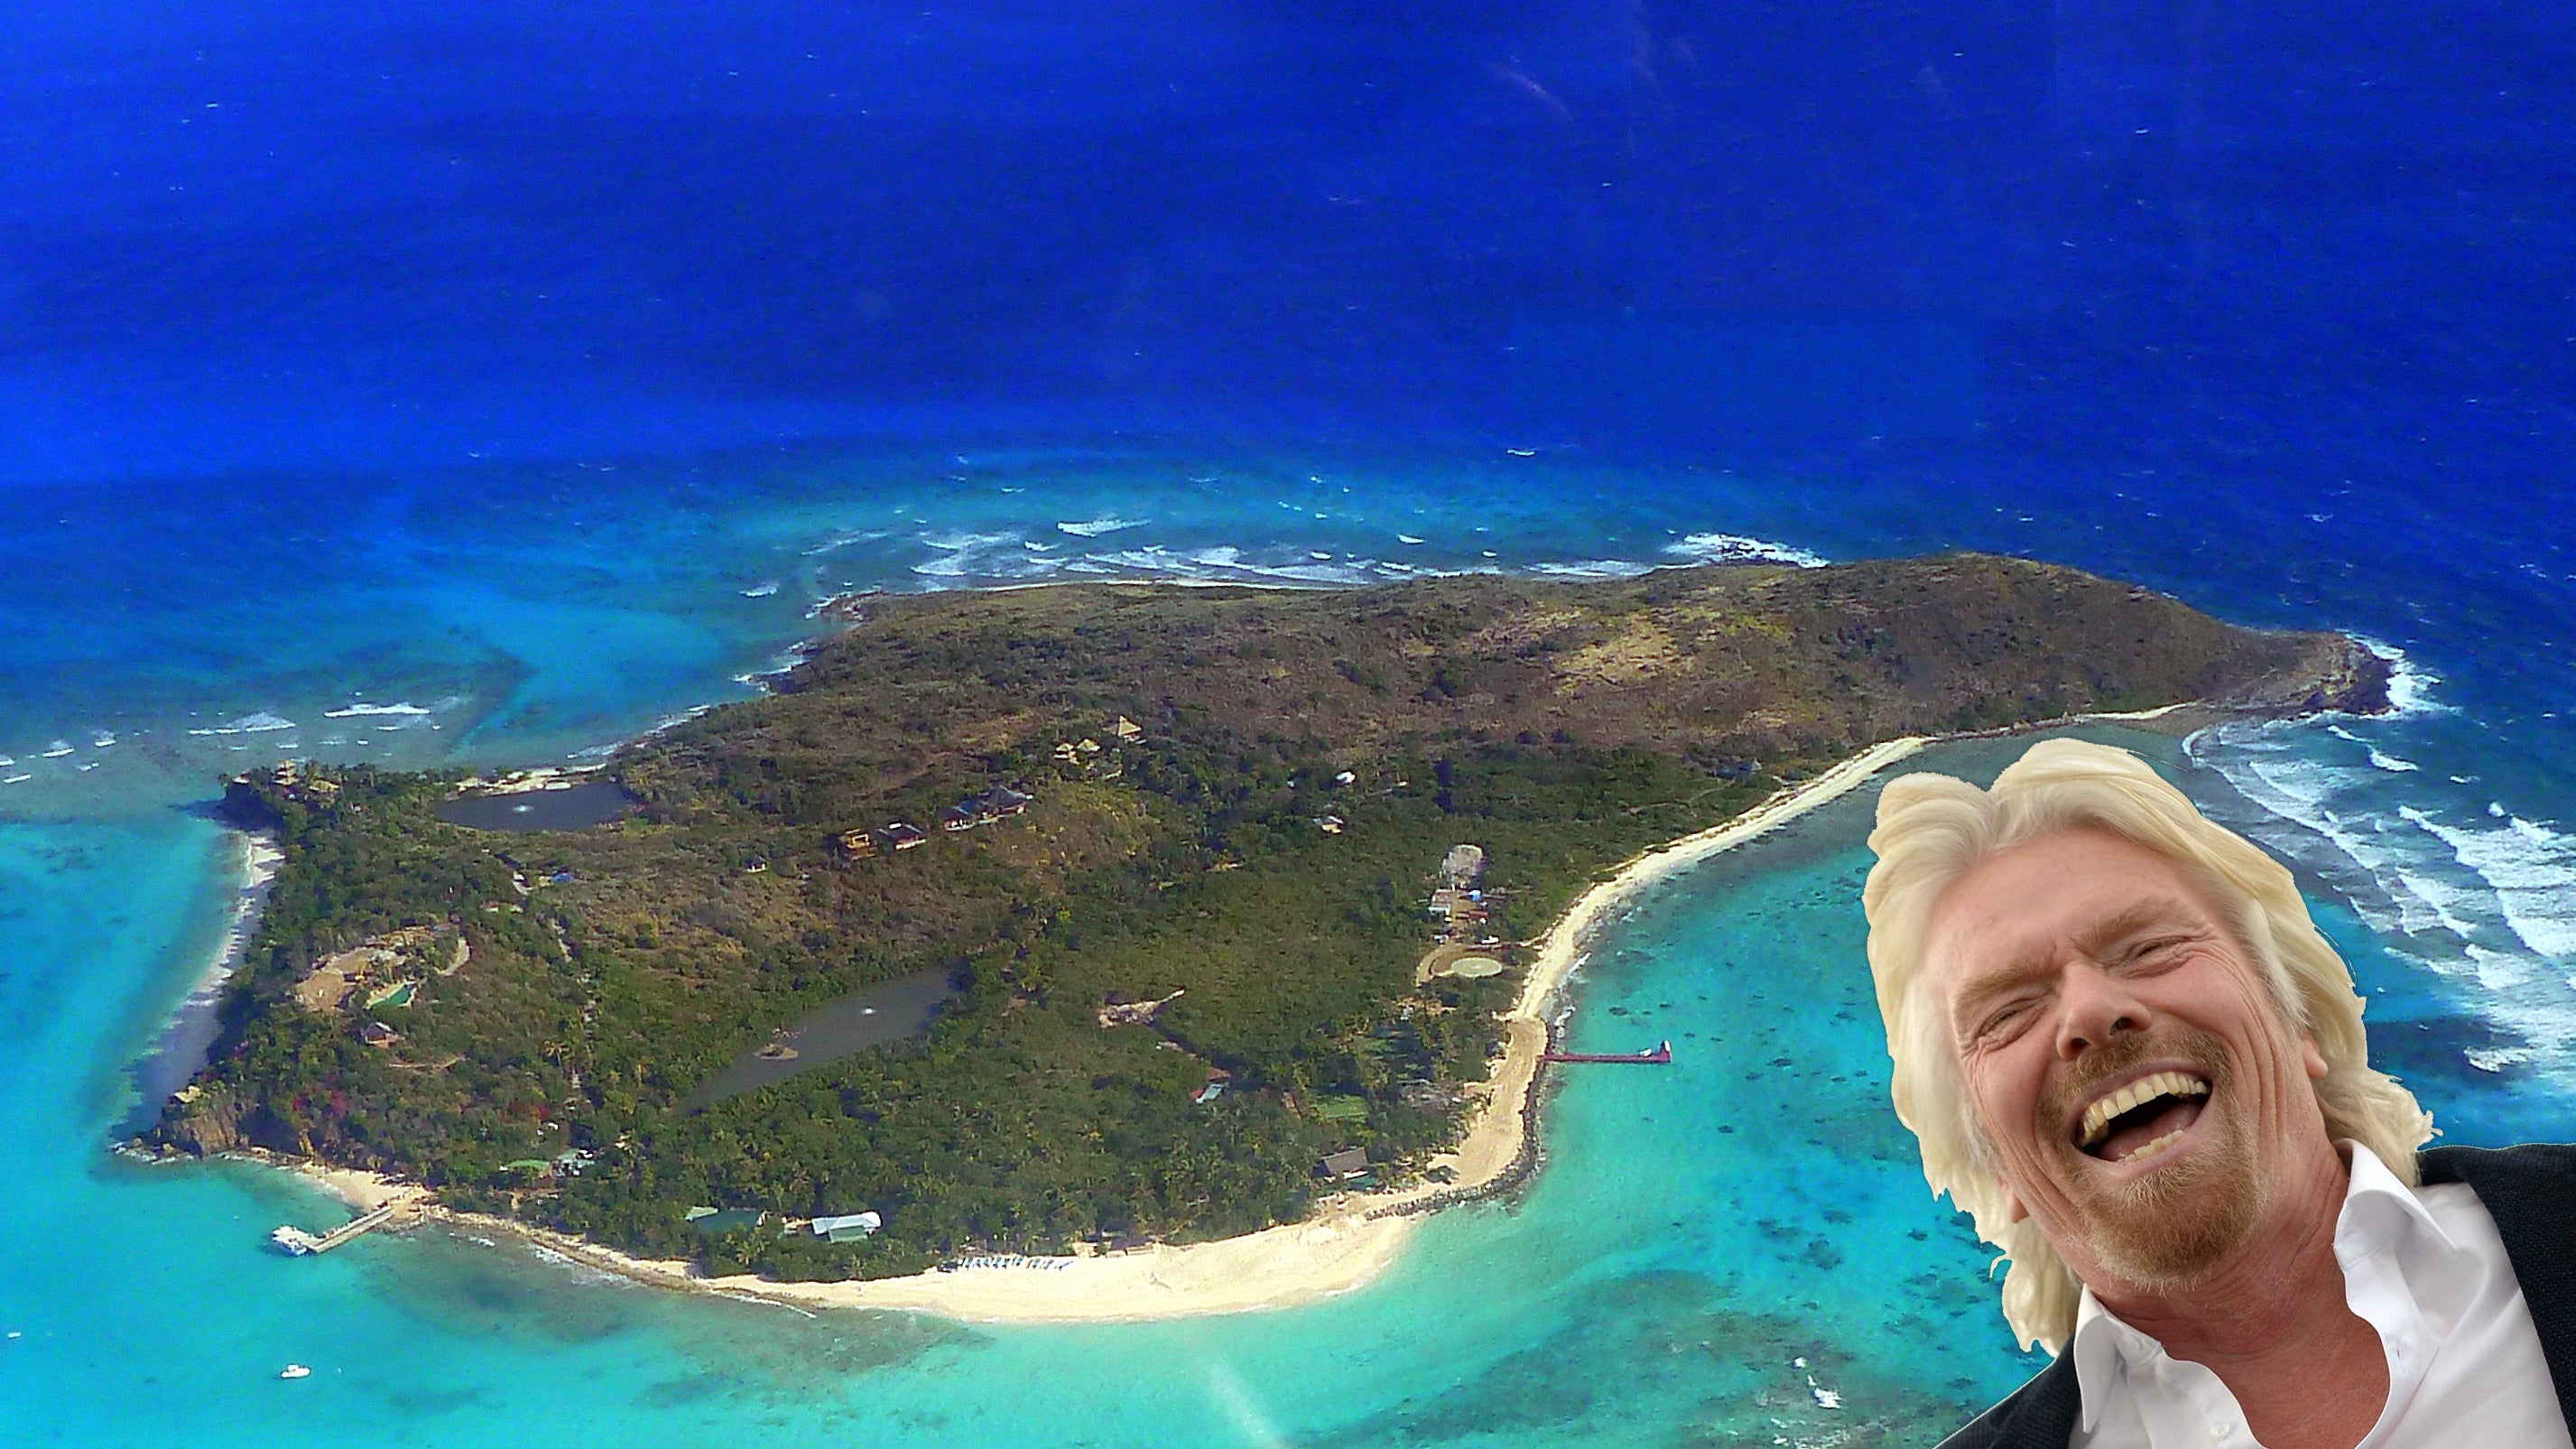 Richard Branson has survived Hurricane Irma on his private island